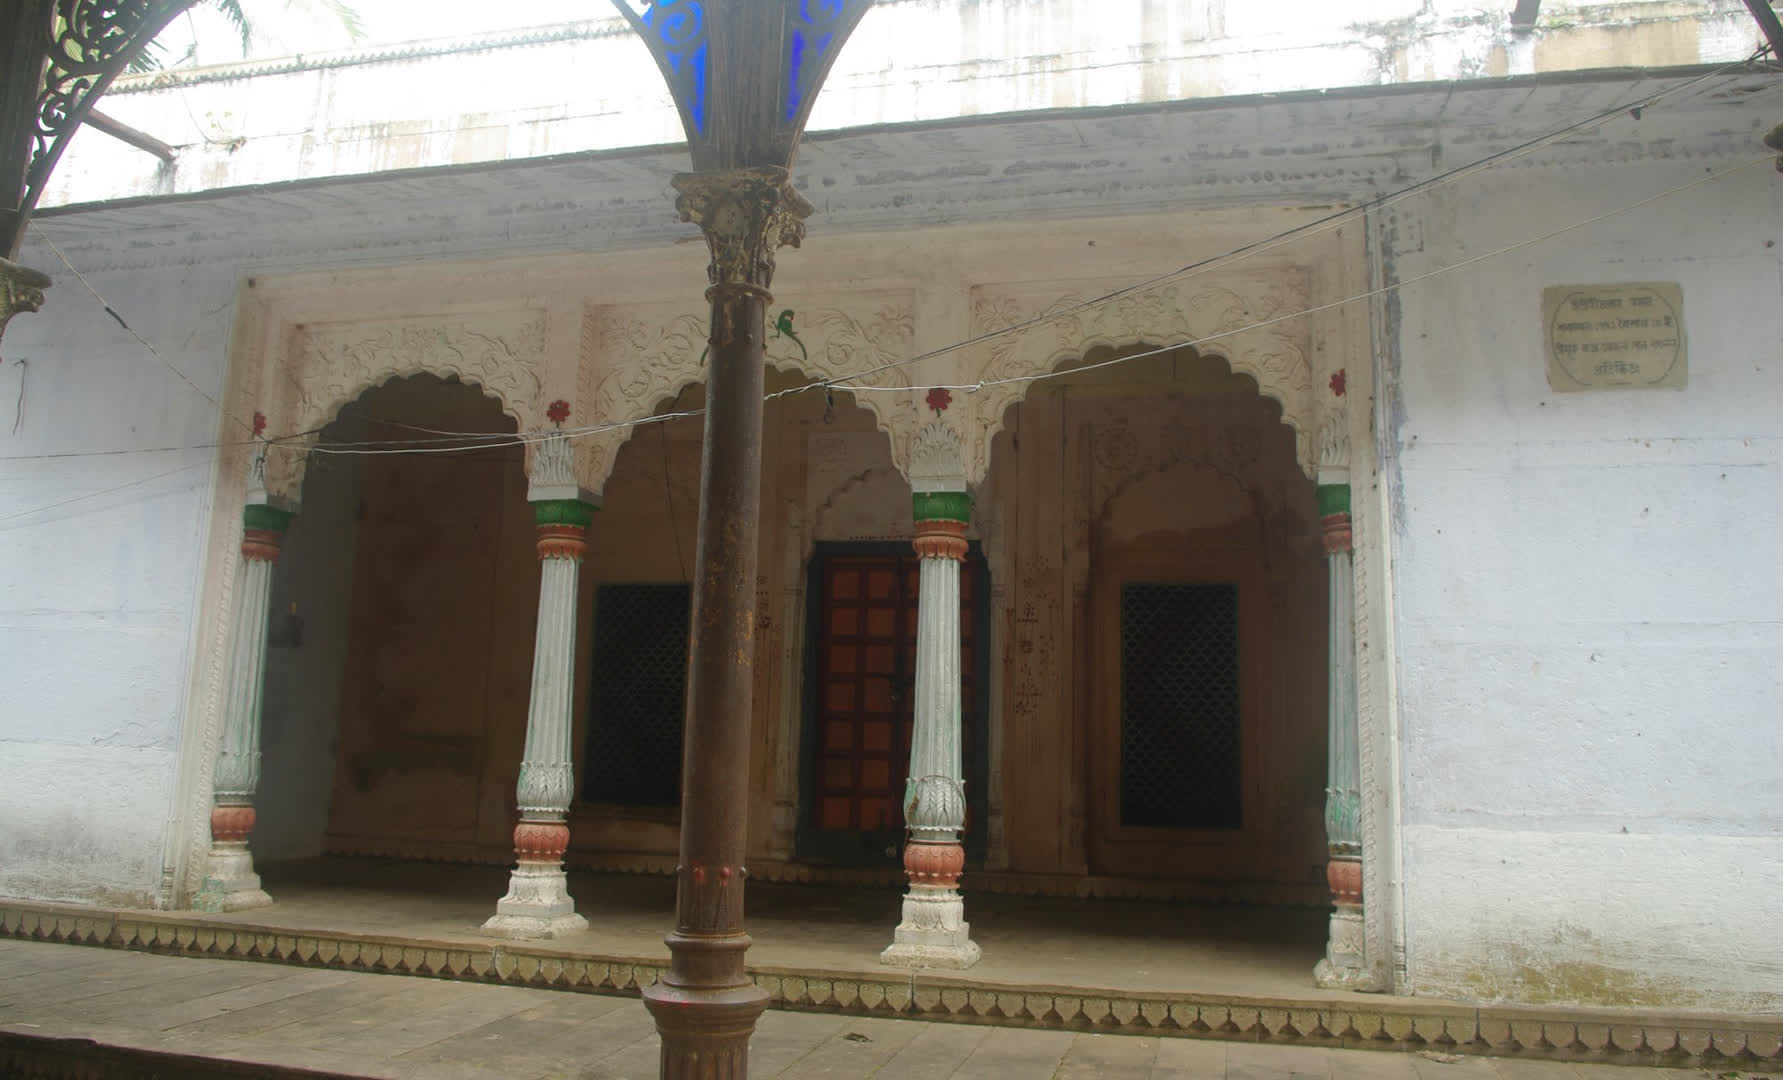 Sitaram Jiu temple which was built in 1819 at a cost of Rs 1 lakh. The temple is said to have been built with stones brought from Ayodhya, the place described as birth place of Rama in the Hindu epic Ramayana.   Narajole Rajbari